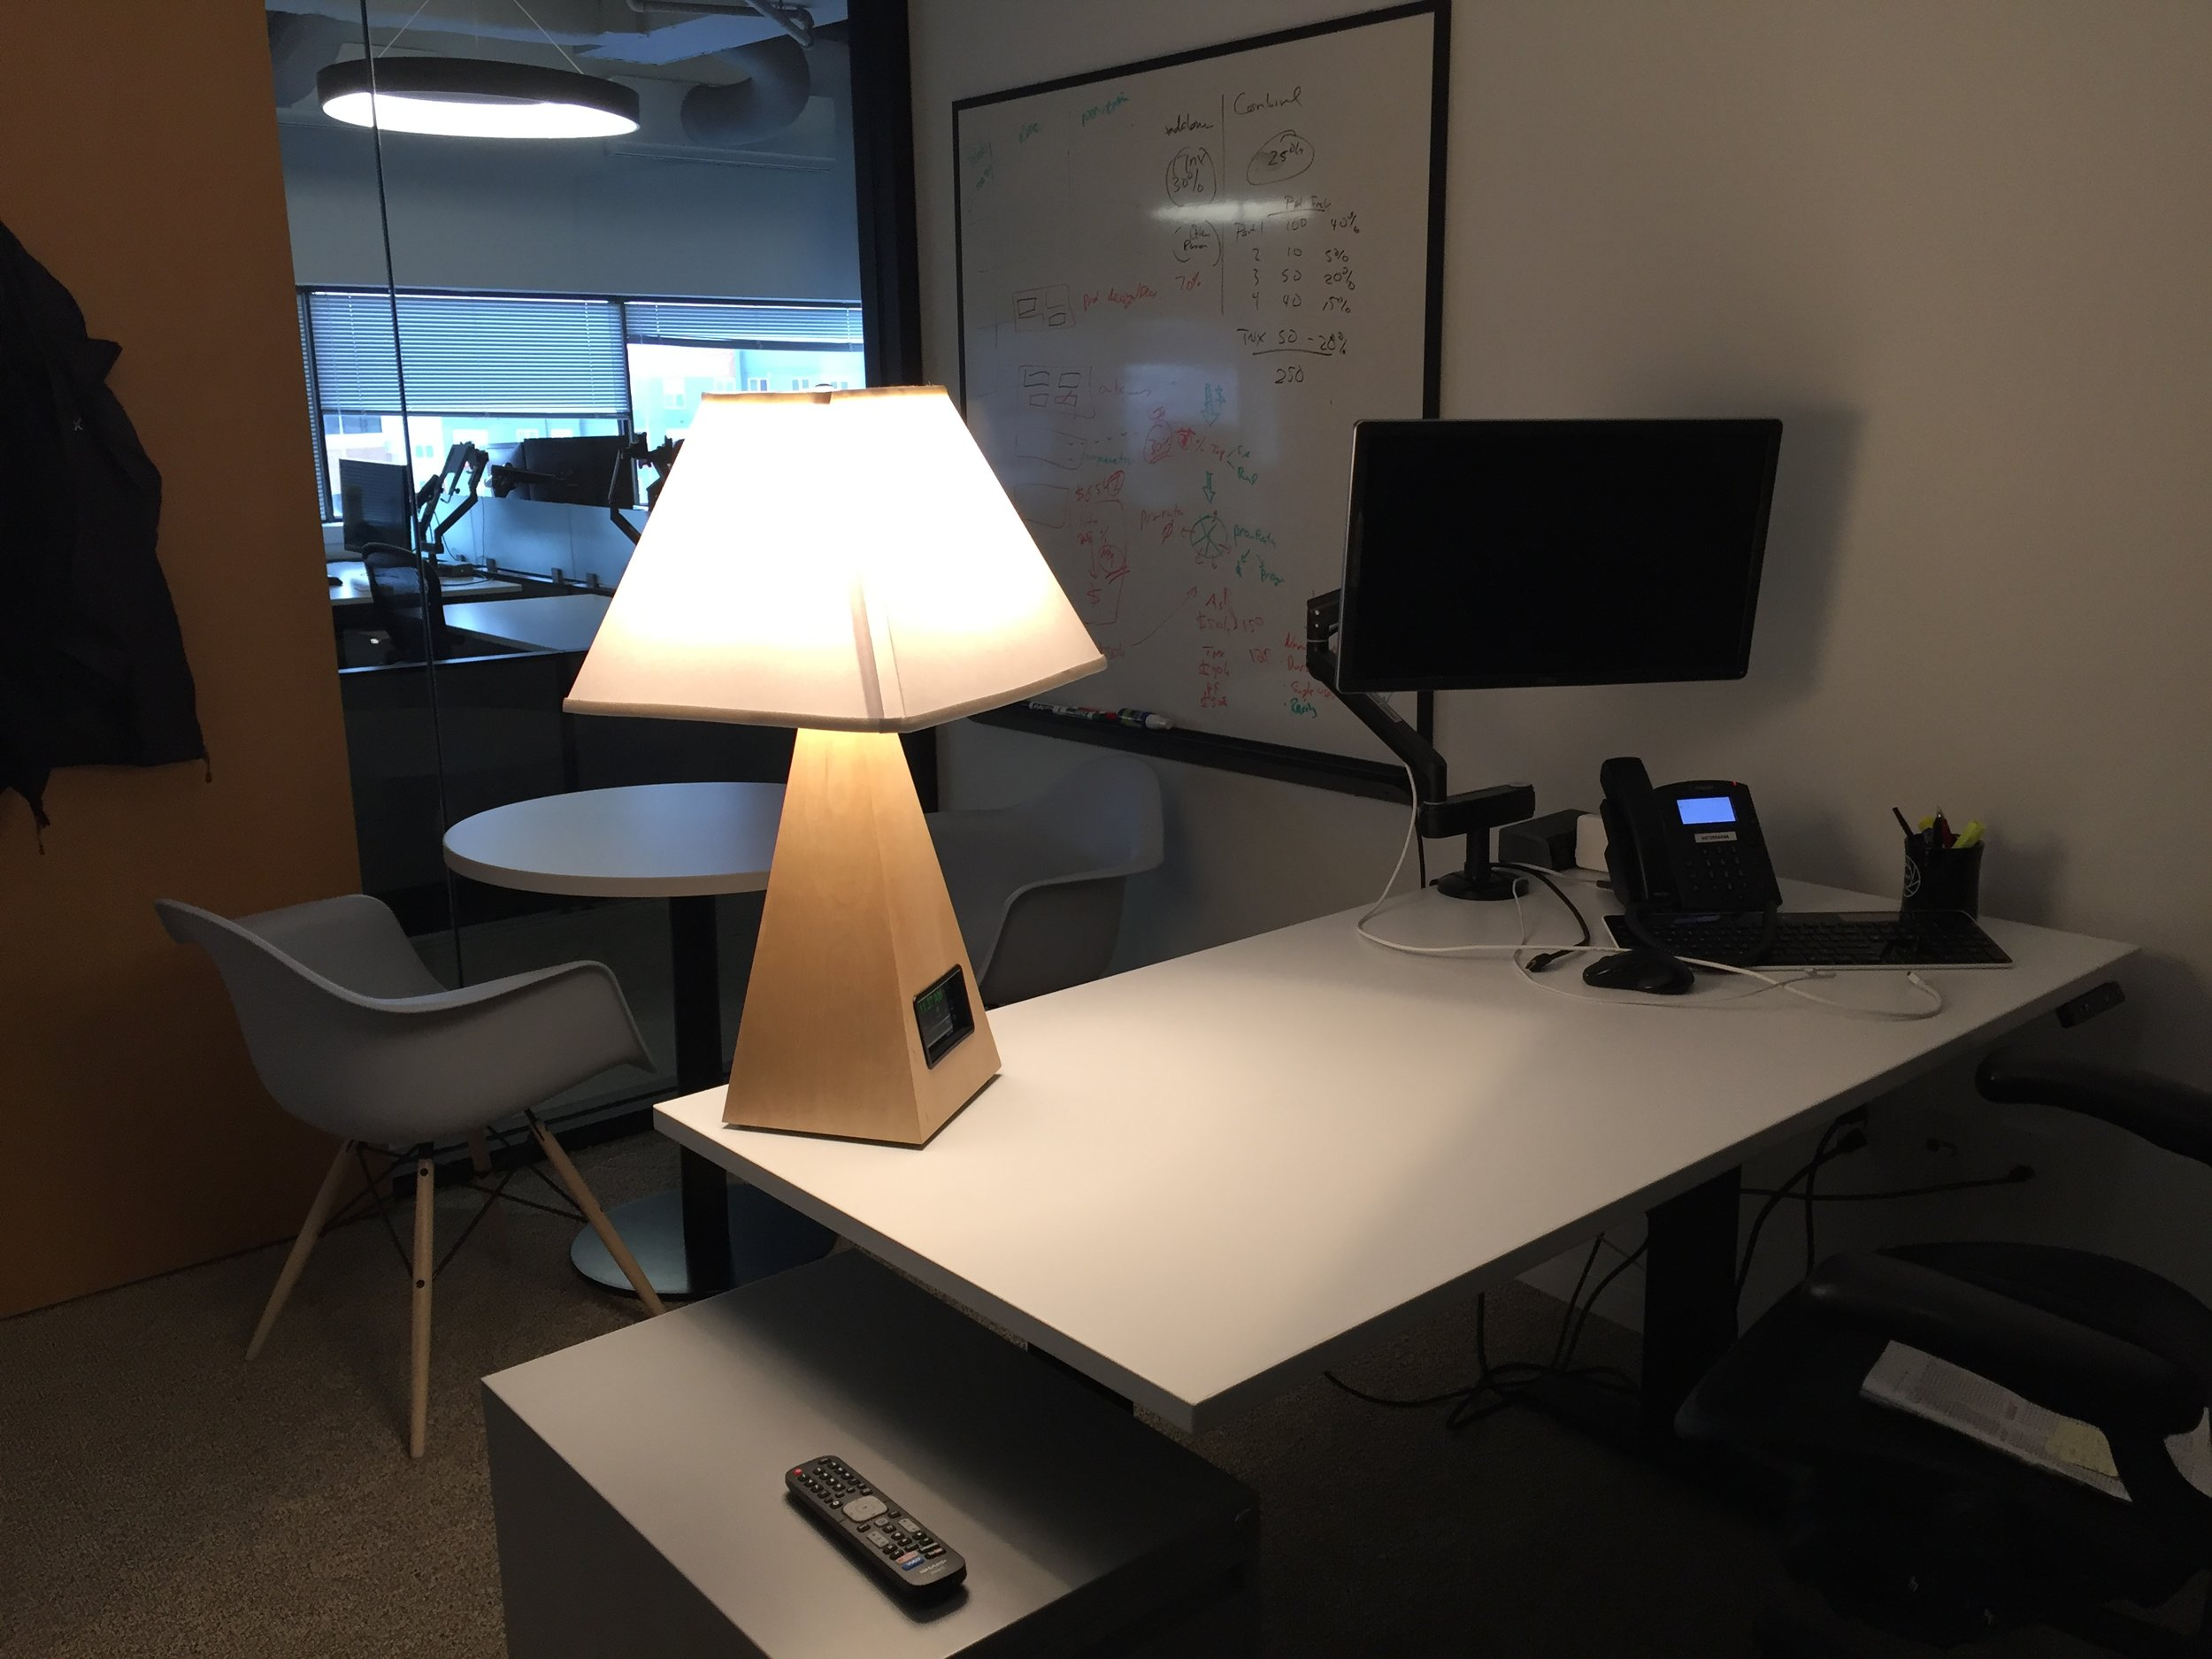 """""""The Purillume lamp provides a stunning light quality and helps to boosts alertness when my energy is low – definitely outshining the existing overhead fluorescent lighting.""""  - M. Mehta"""